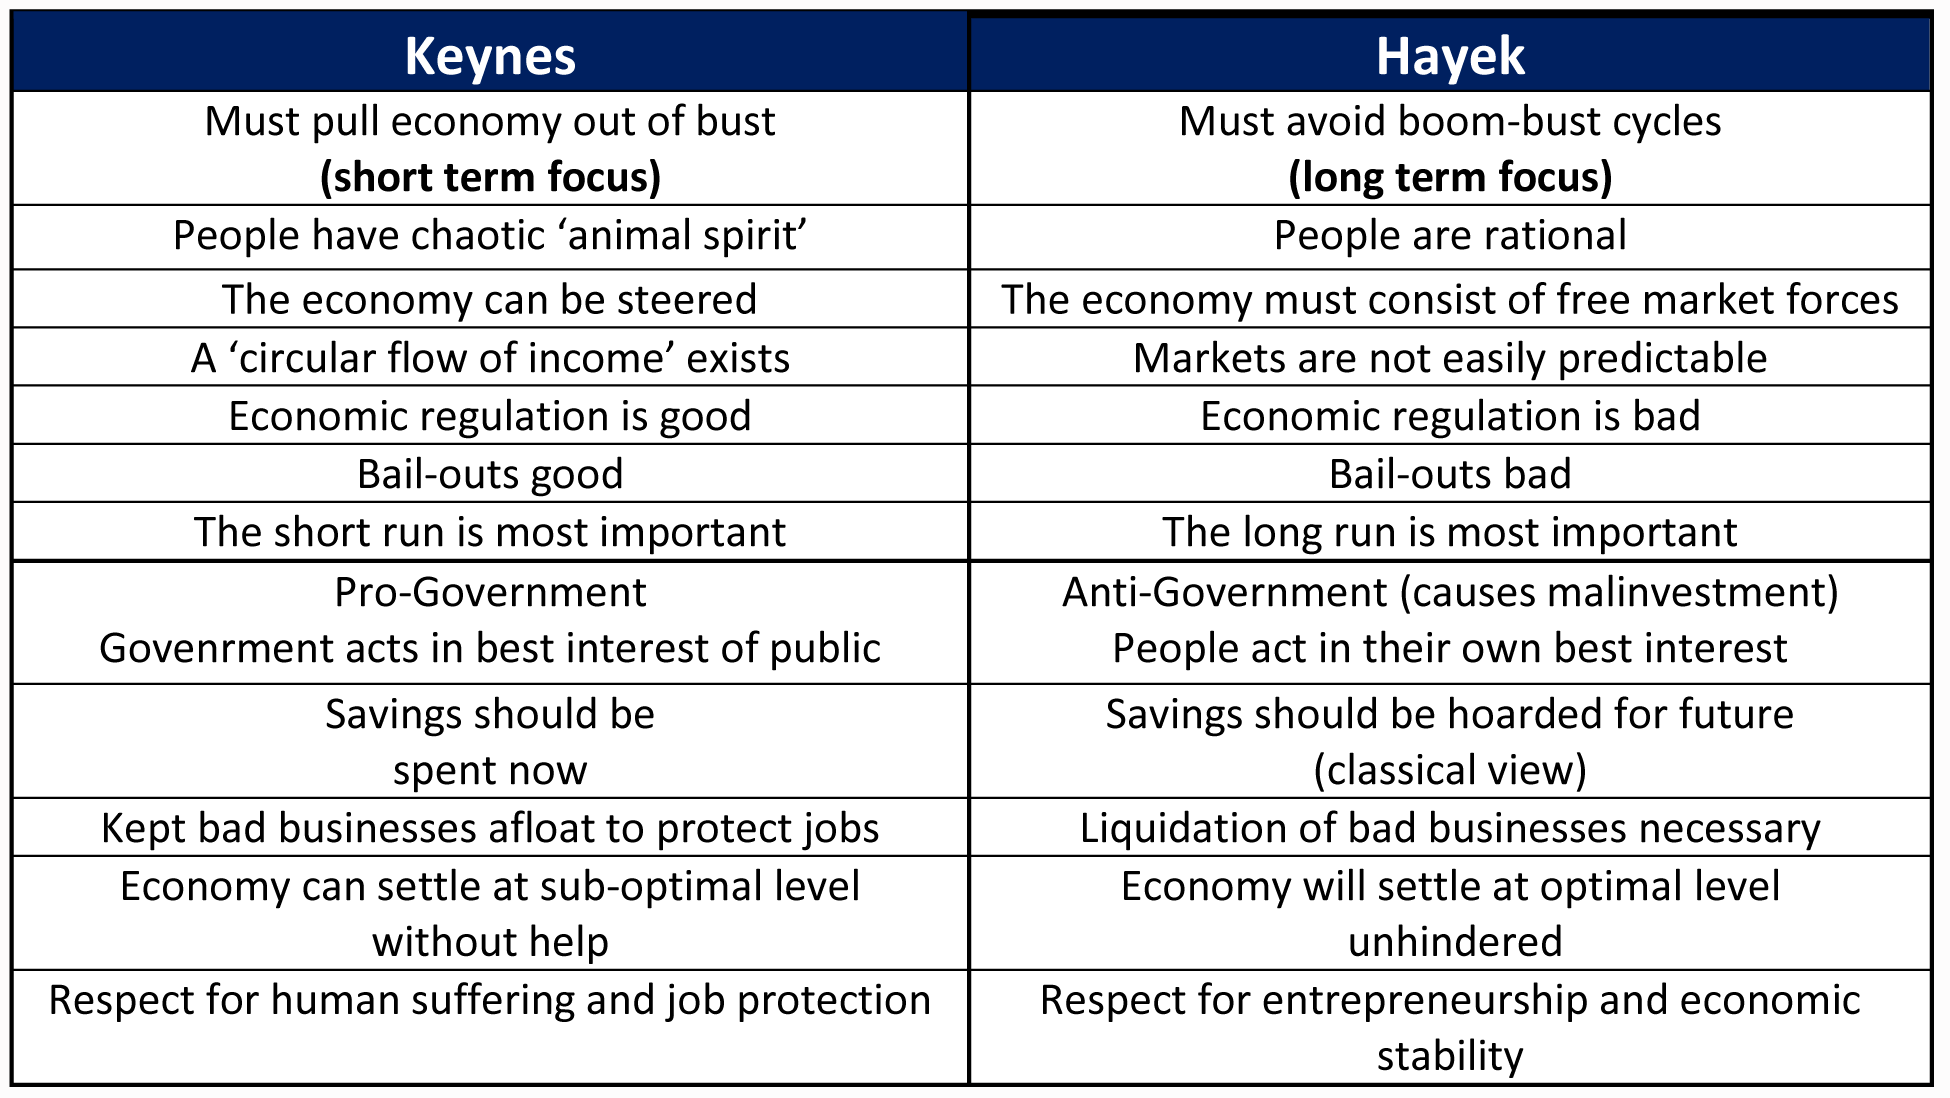 compare and contrast classical and keynesian There are many differences between classical and keynesian economics, but generally speaking, classical economists keynesian economics, by contrast those subscribing to the keynesian philosophy tend to believe that short-term problems are some of the best ways to influence the long.